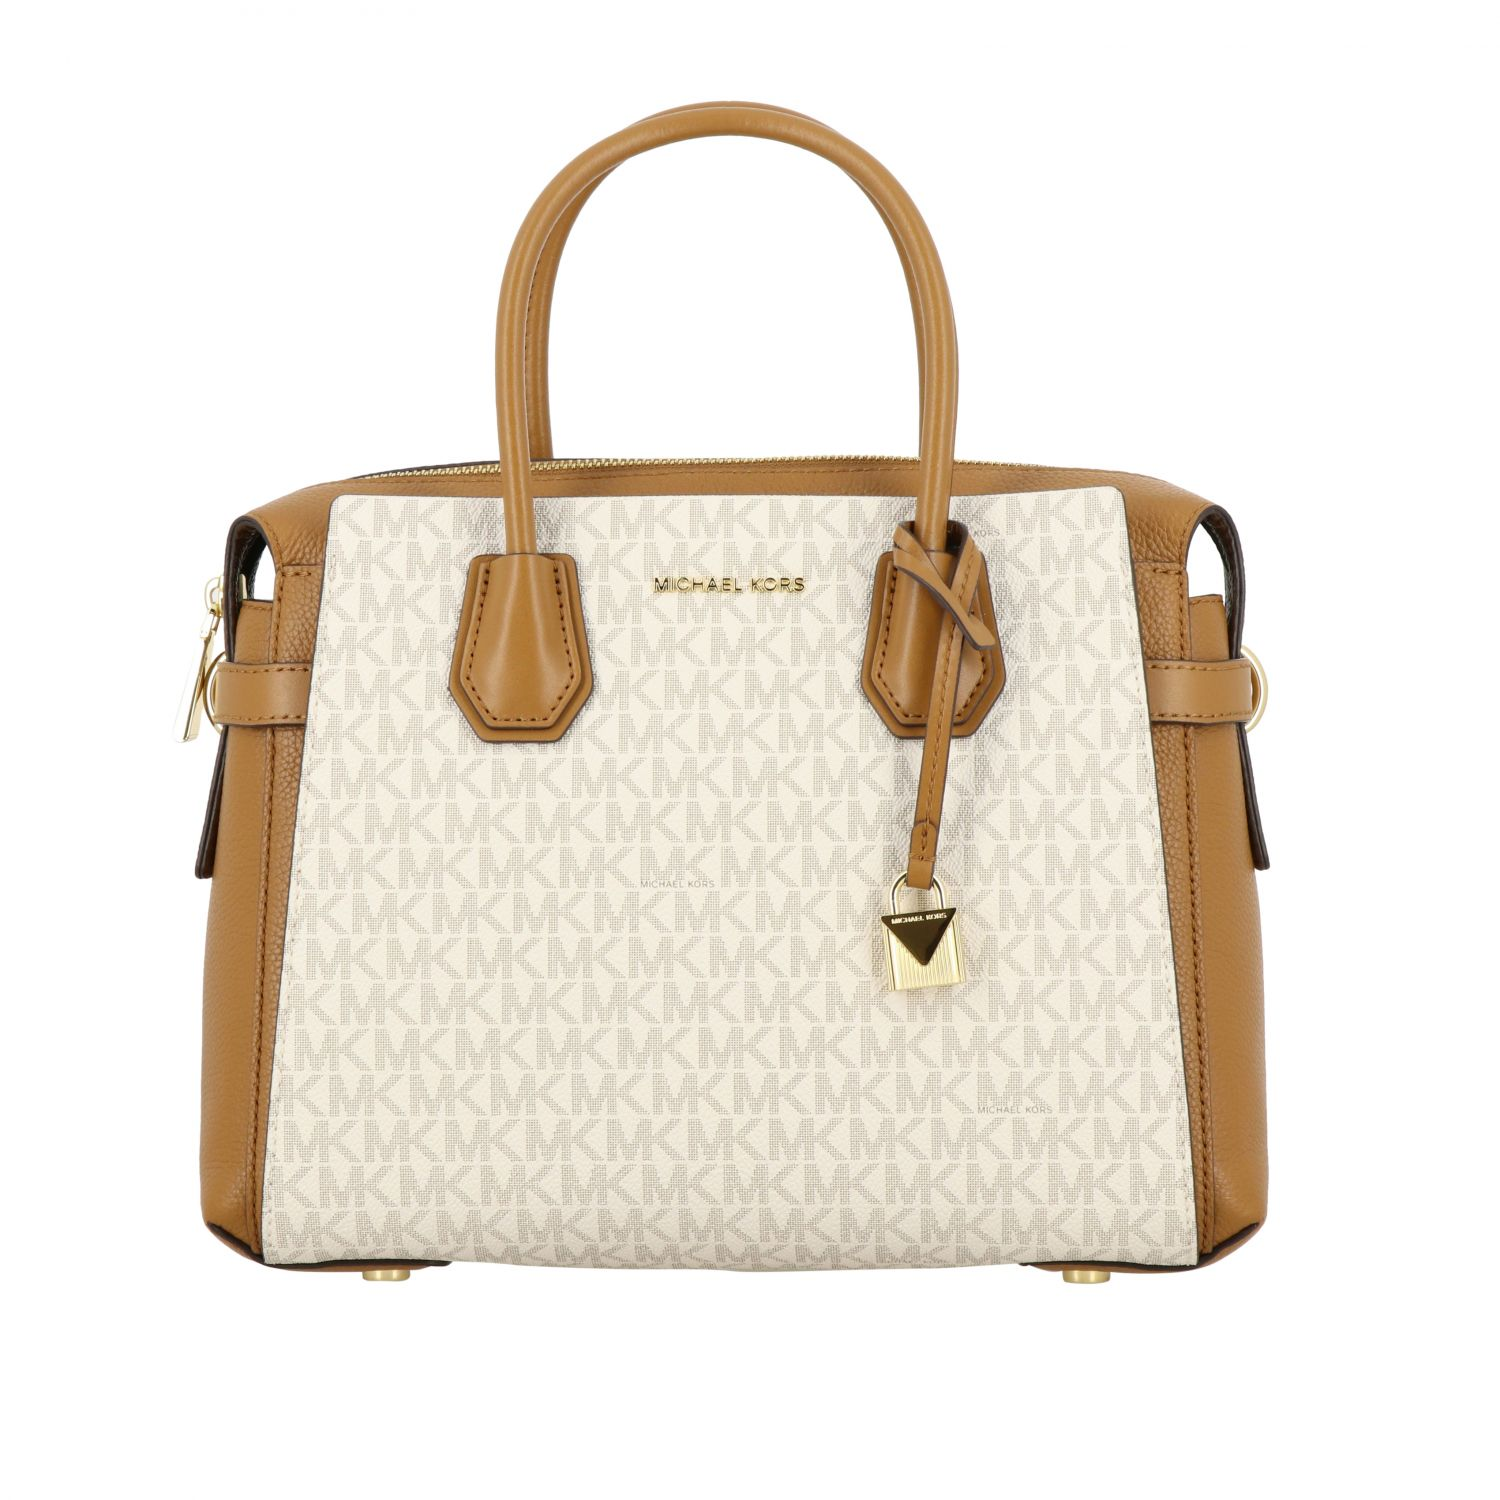 Handbag Michael Kors Women